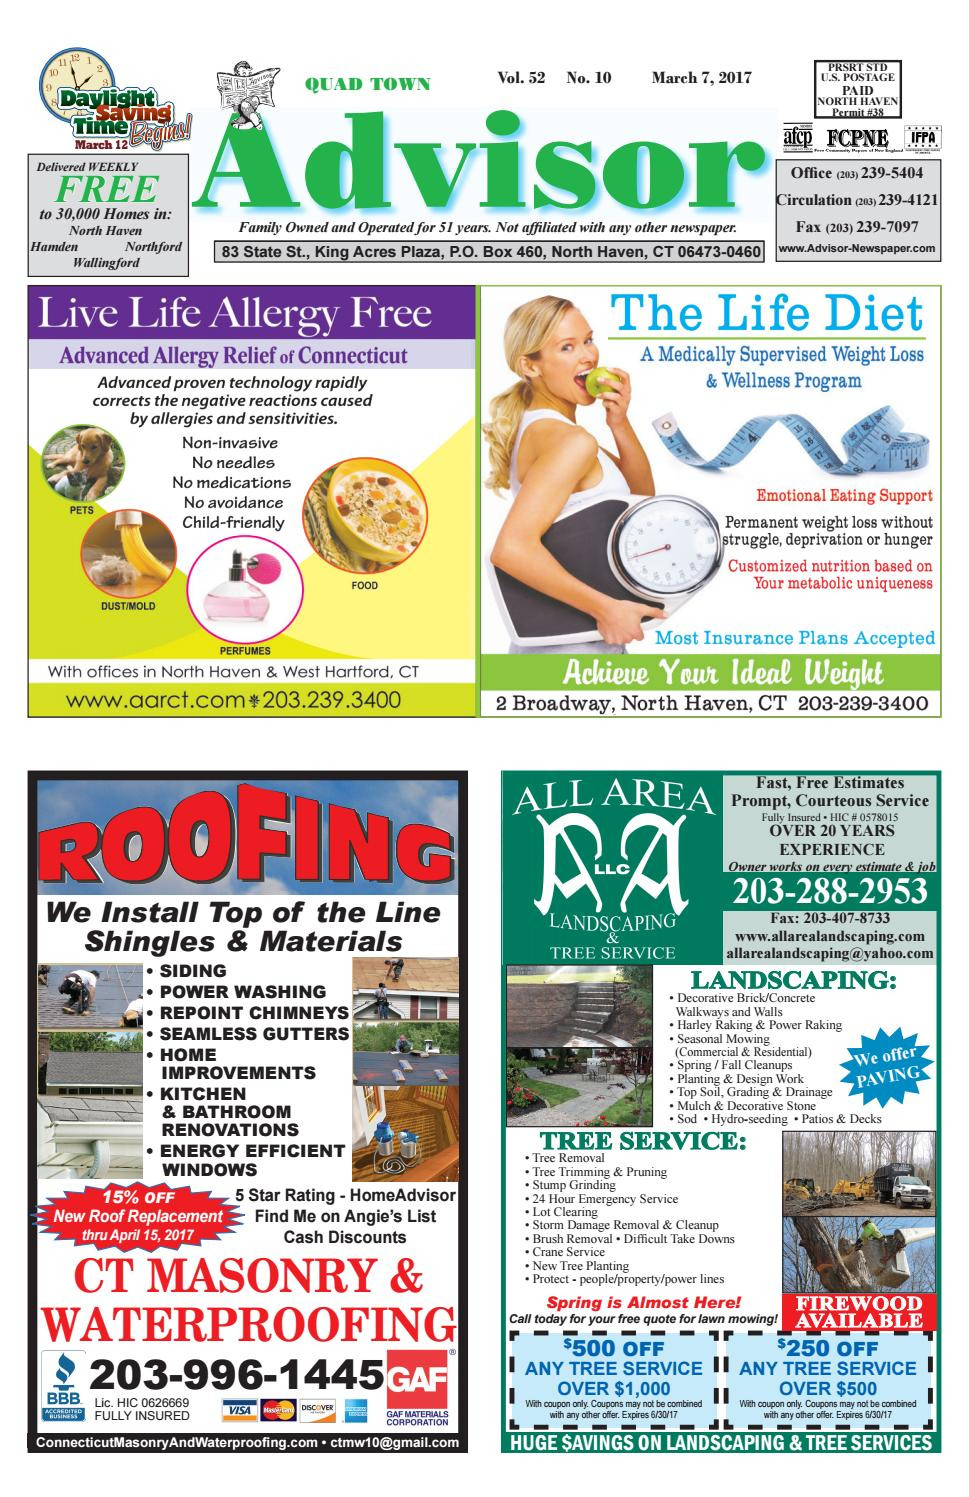 king hardwood floors bridgeport ct of the advisor march 7 2017 by the advisor newspaper issuu with page 1